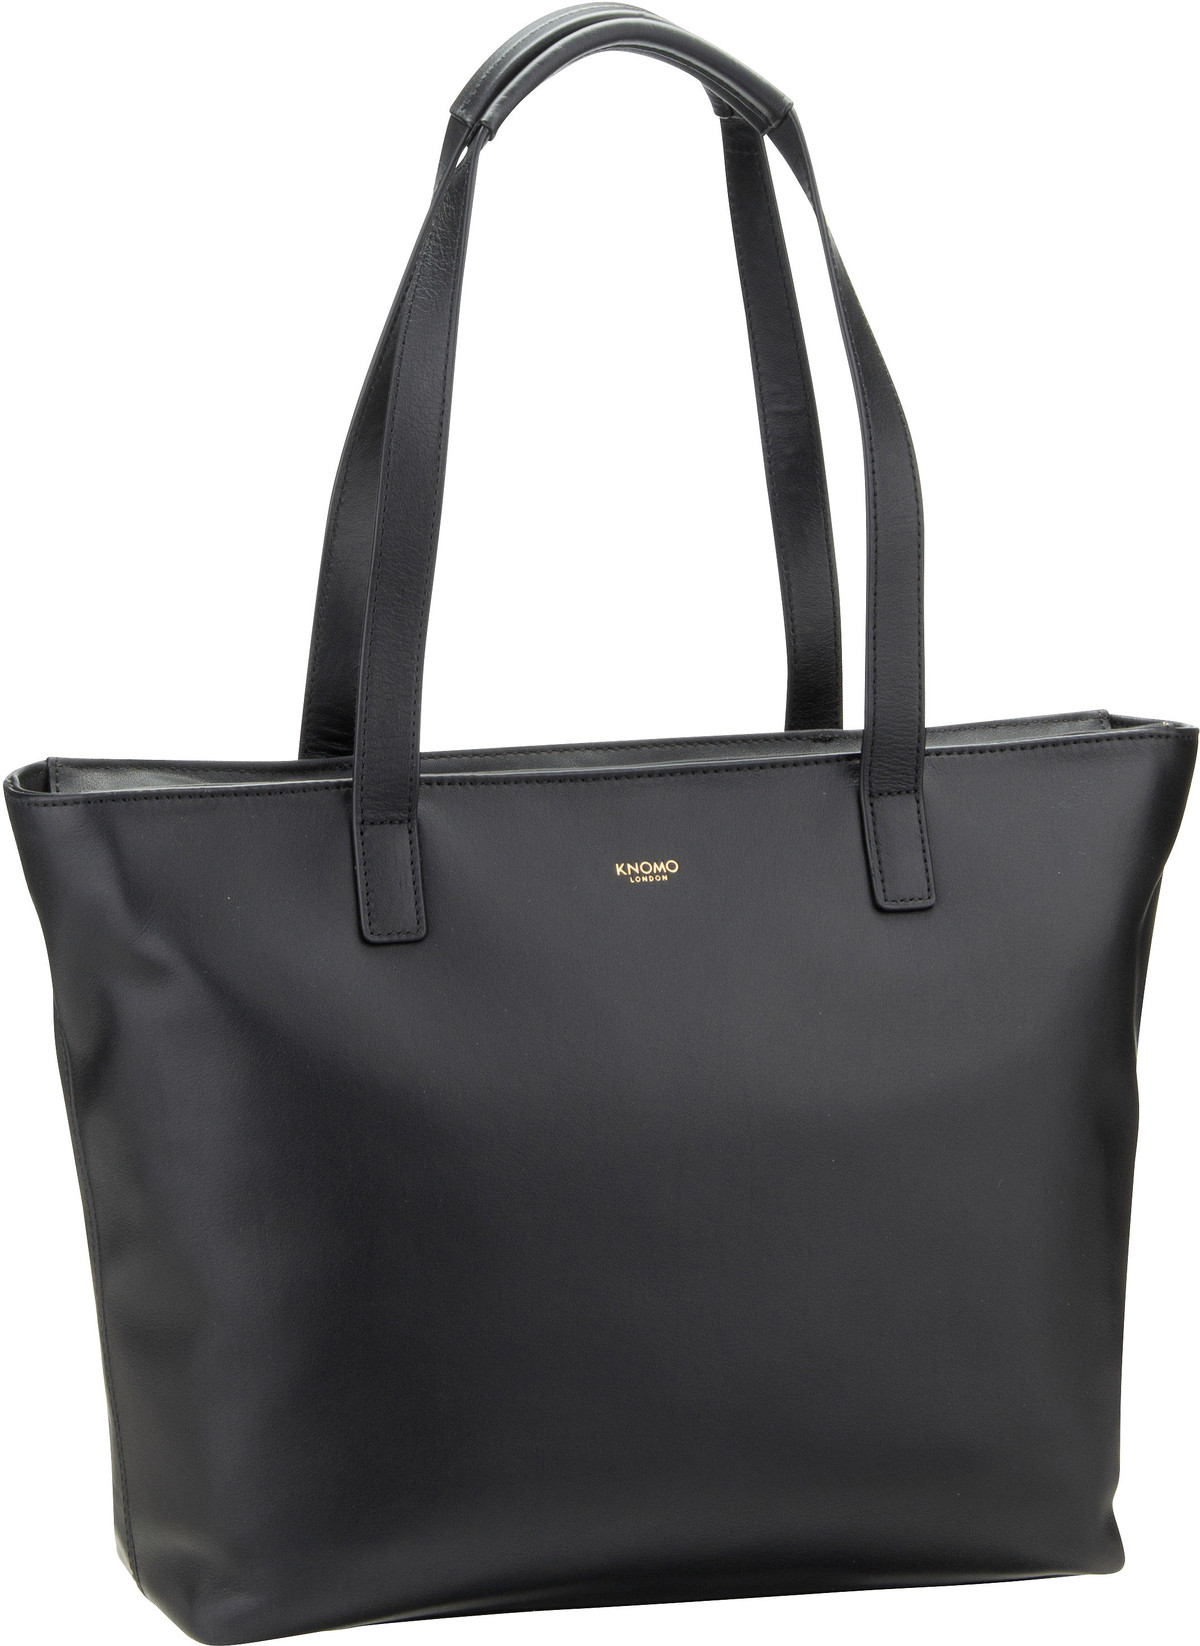 Handtasche Mayfair Luxe Mini Maddox 13'' Black (8.9 Liter)